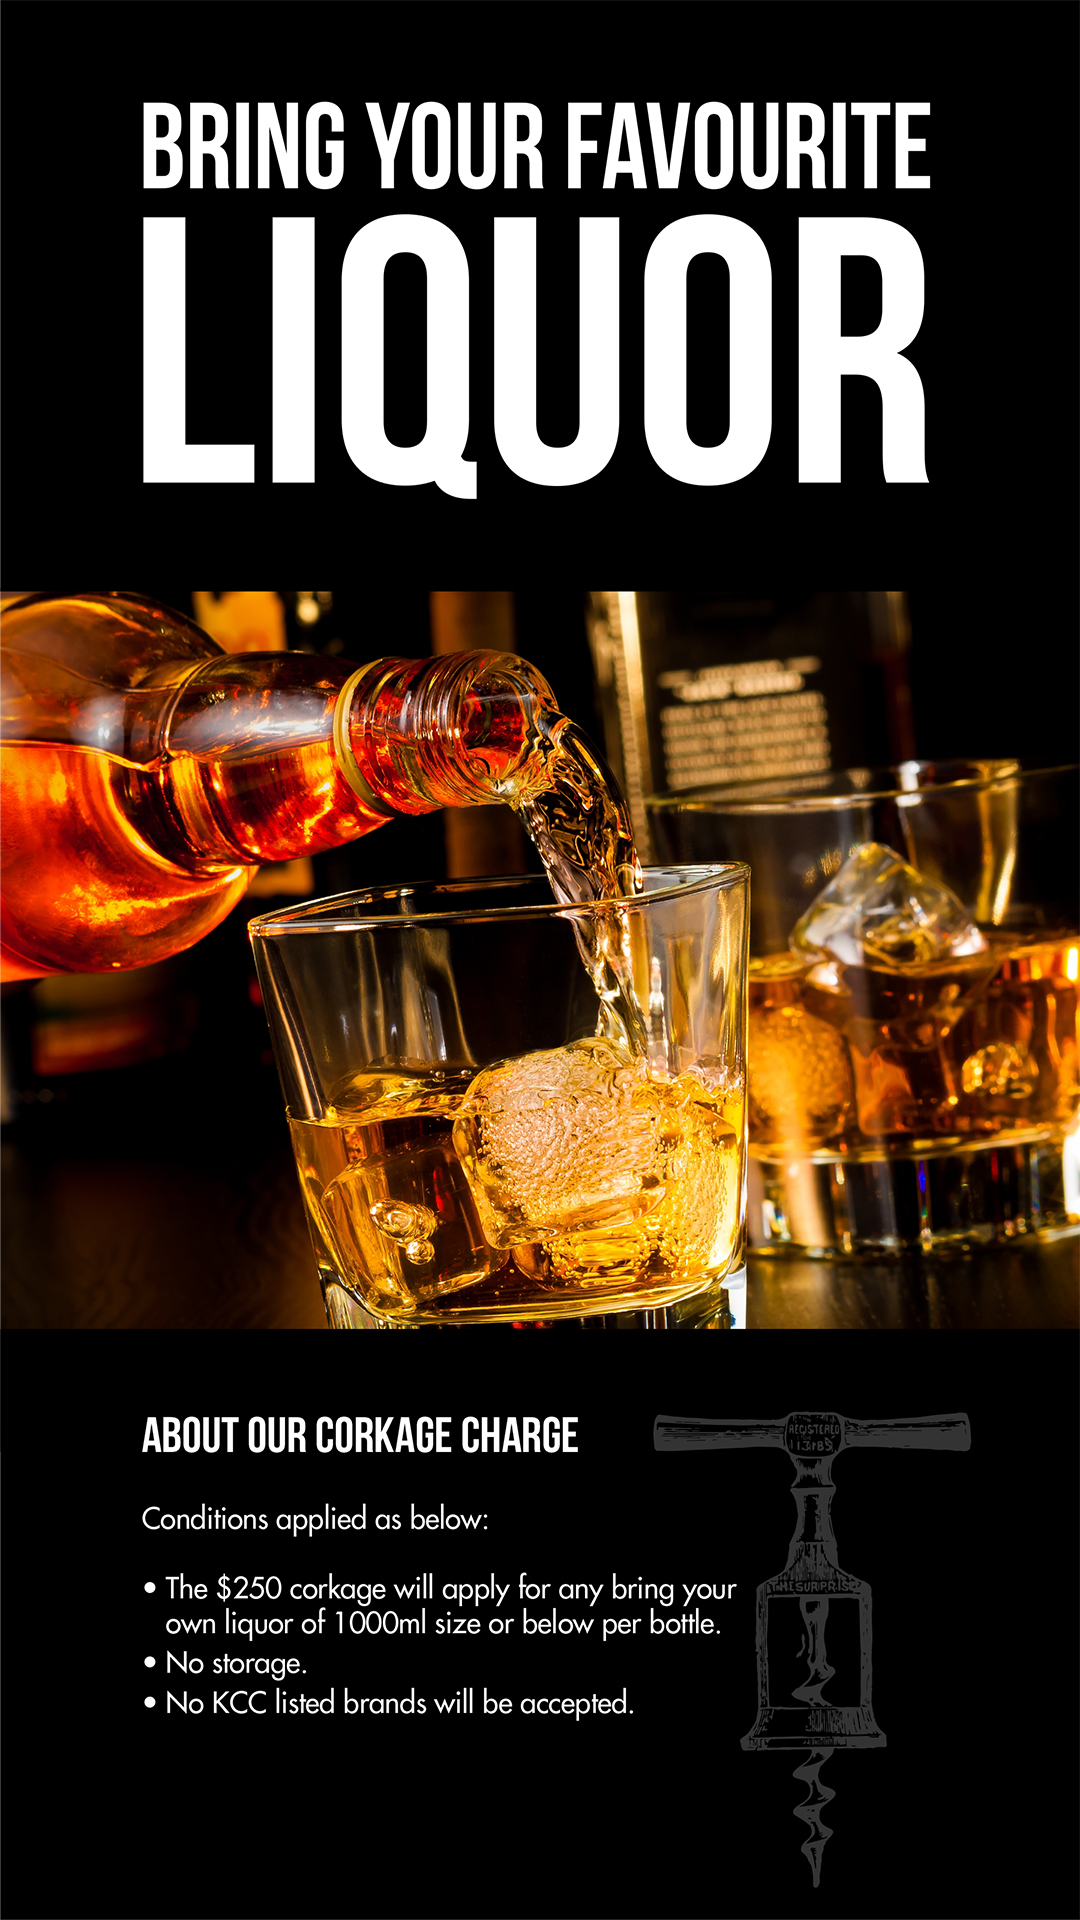 202006-Bring Your Own Liquor Corkage-ENB